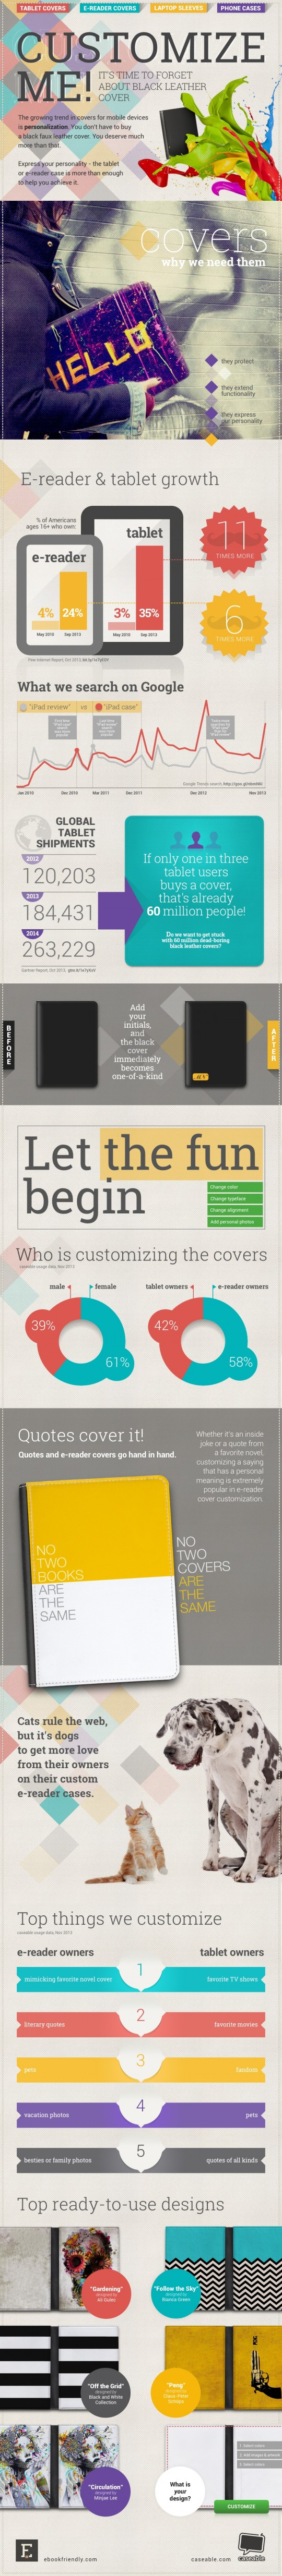 Custom cases are a new trend - infographic by Caseable and Ebook Friendly